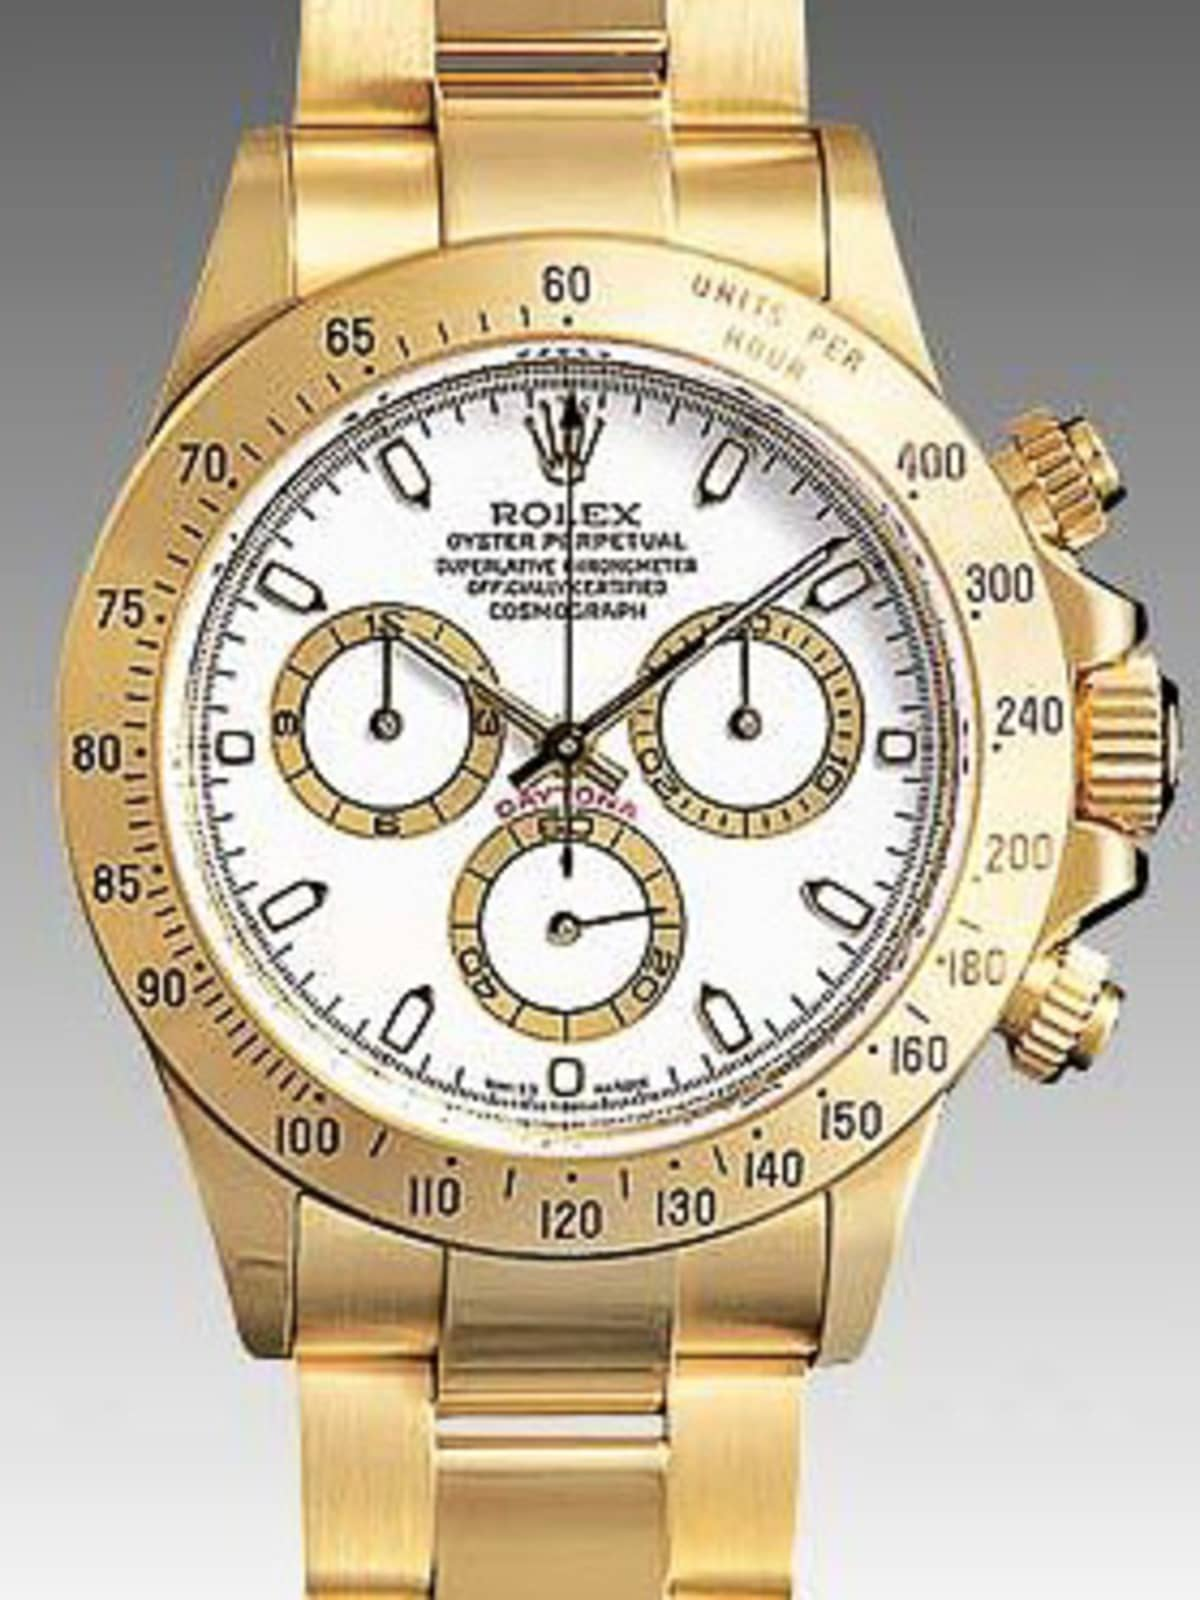 News_Rolex_Cosmograph_Daytona_watch